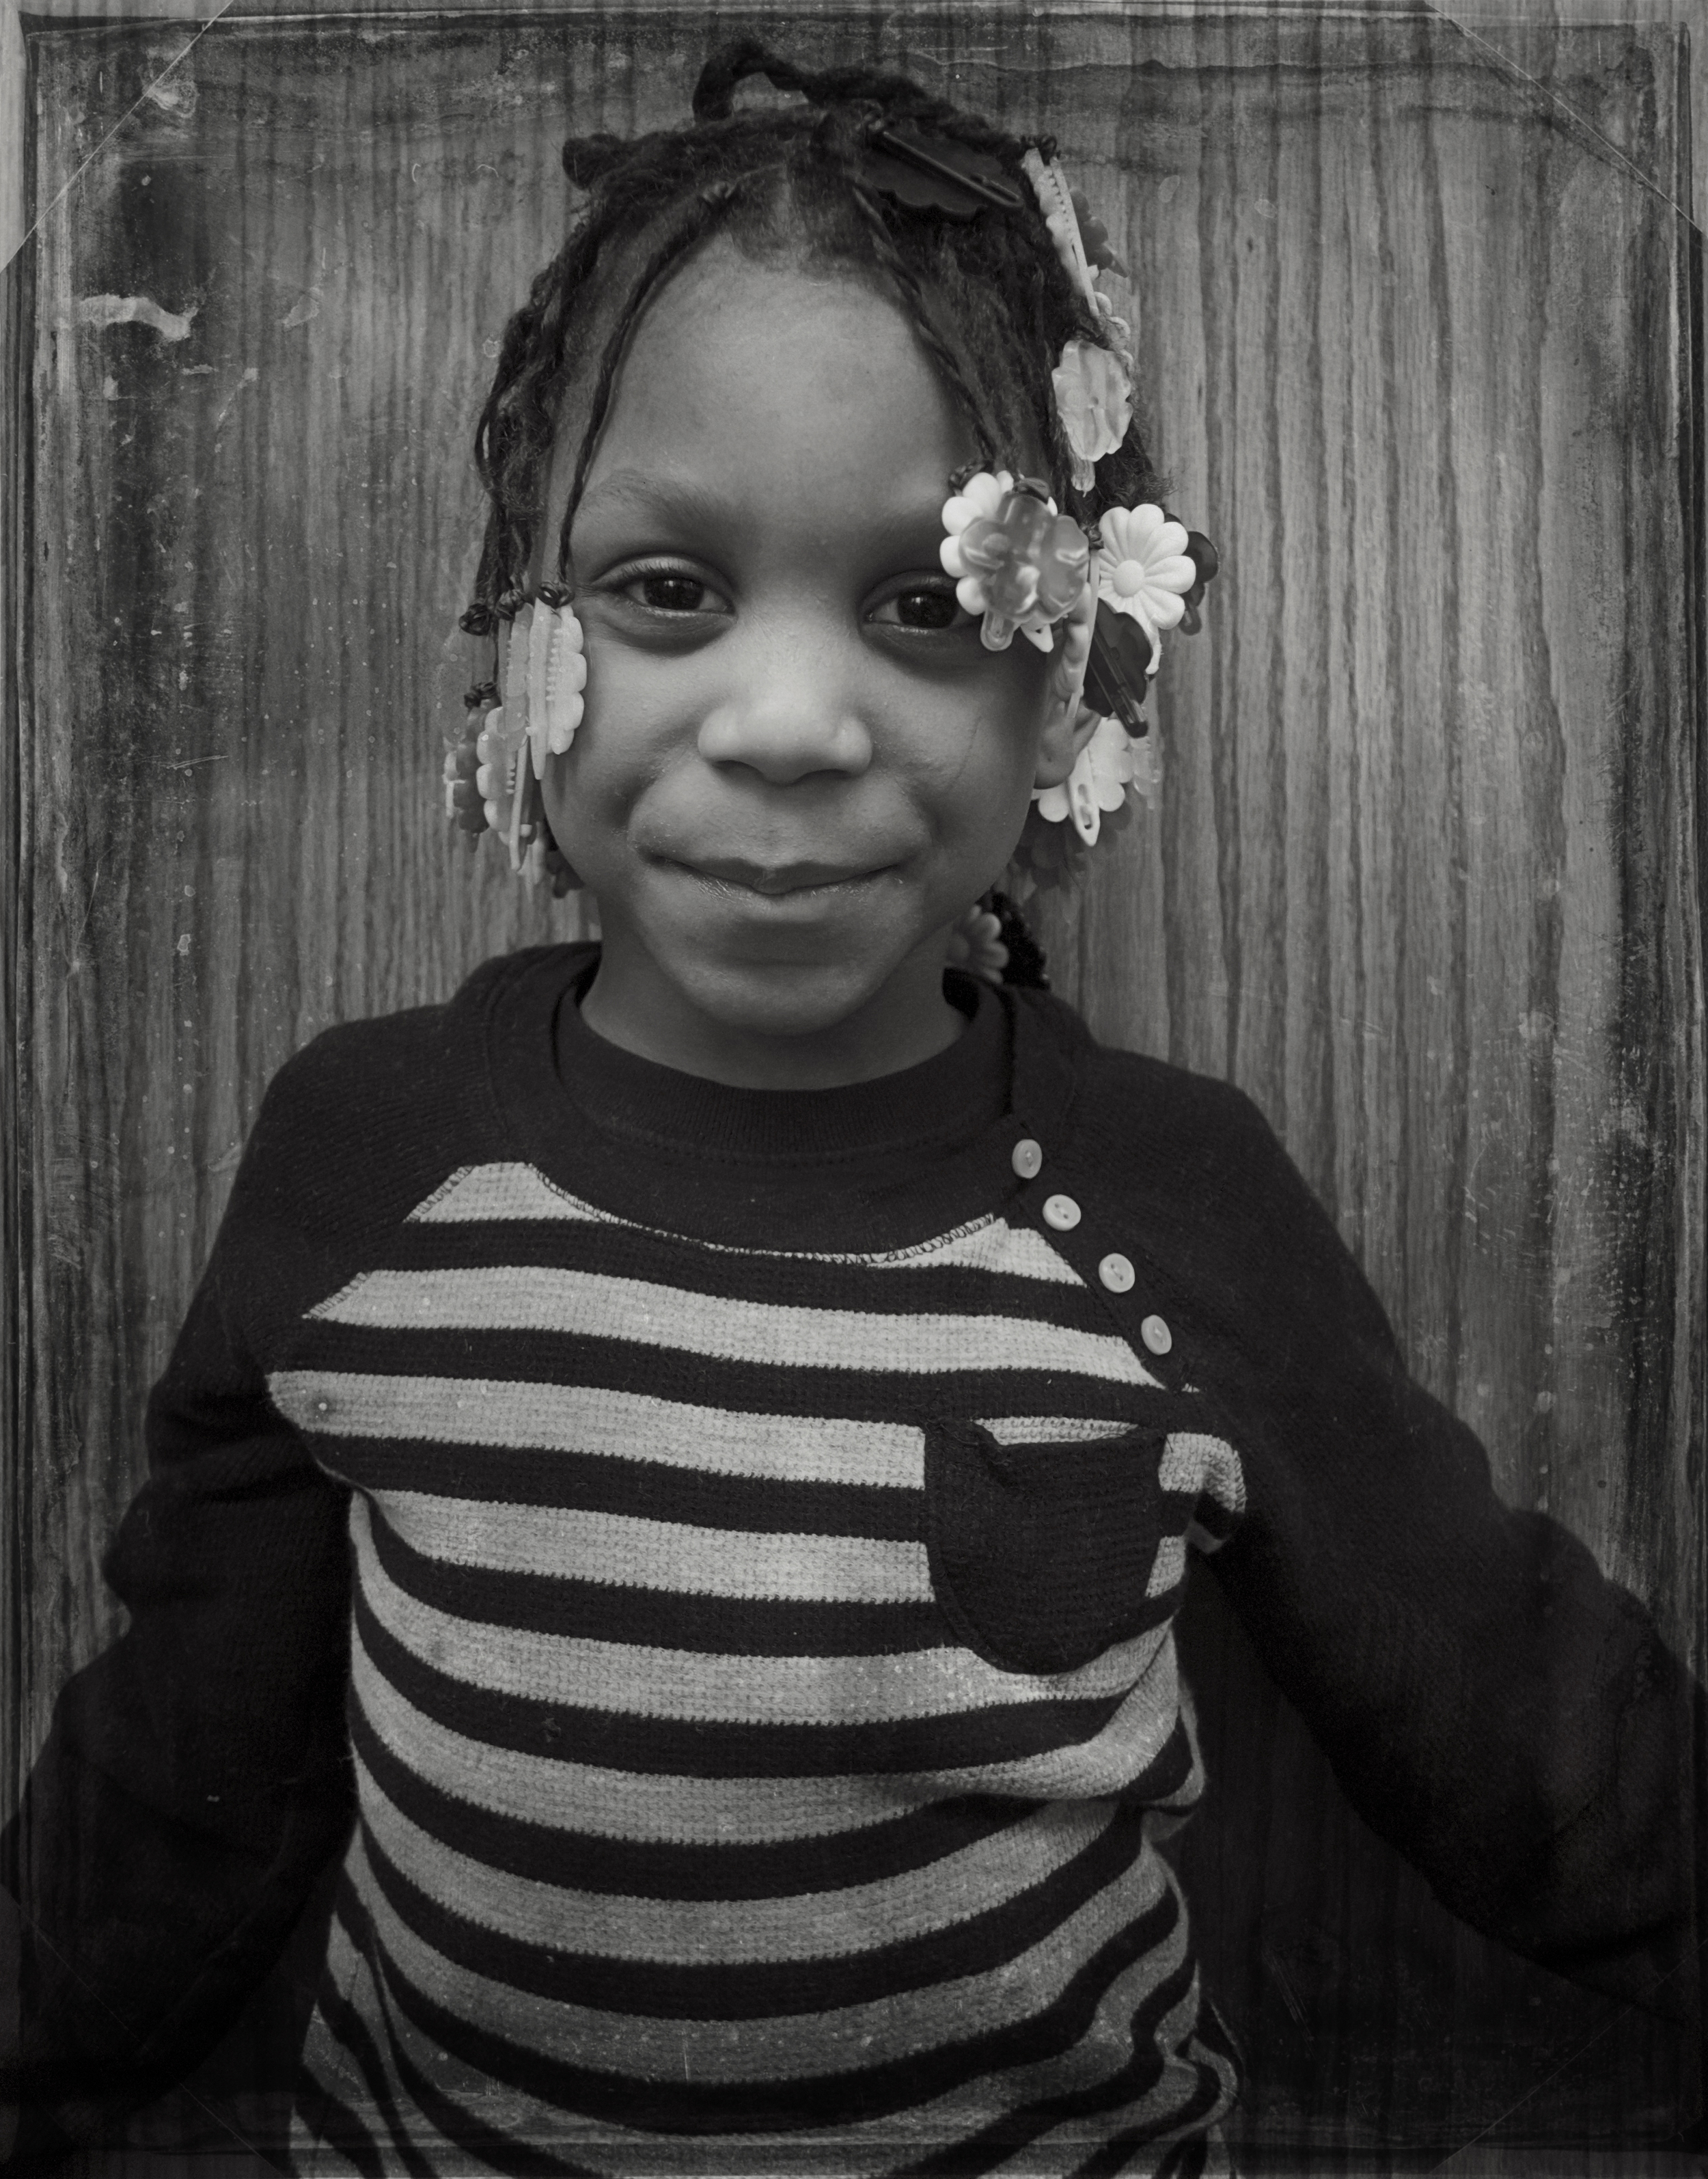 PORTRAITS | Girl in Stripes, Chicago